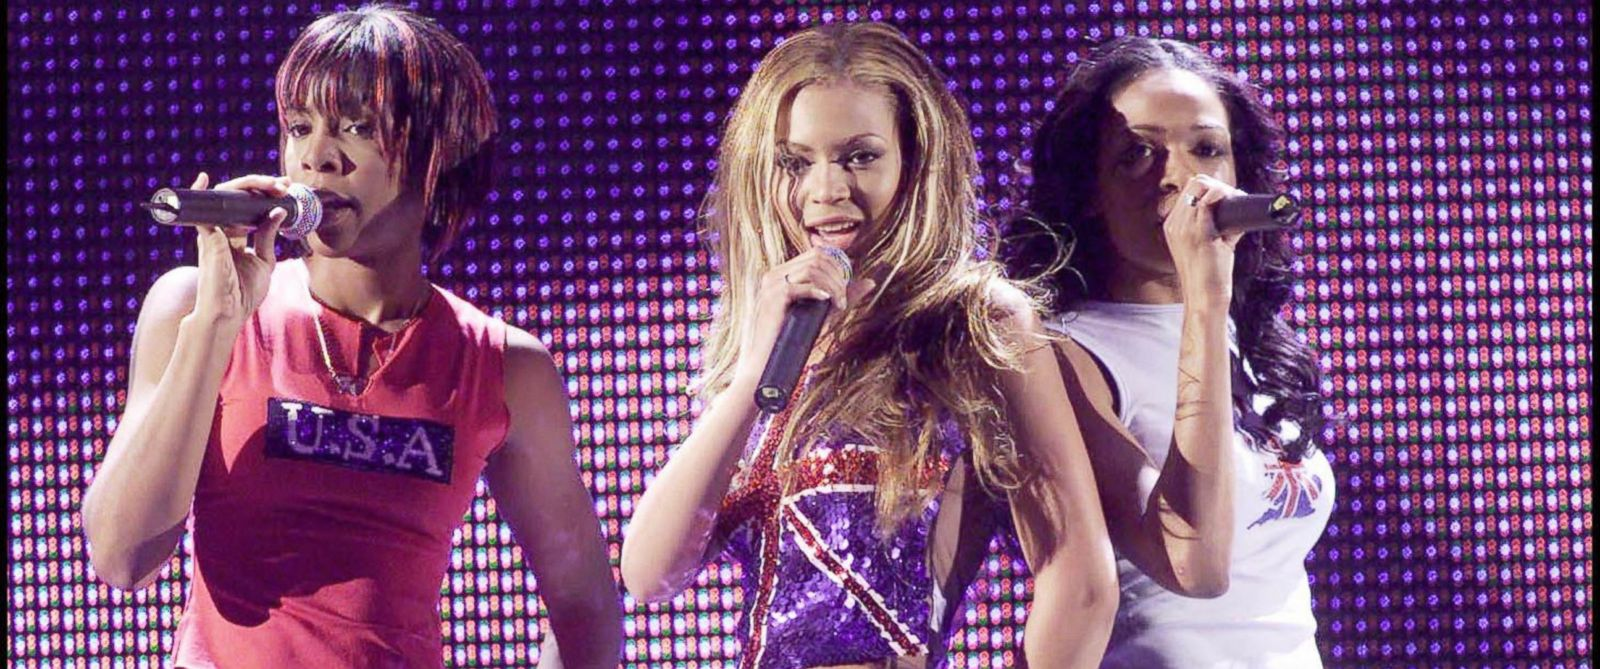 PHOTO: Destinys Child performs on stage at the Brit Awards rehearsals at Earls Court Exhibition Centre, Feb. 26, 2001 in London.